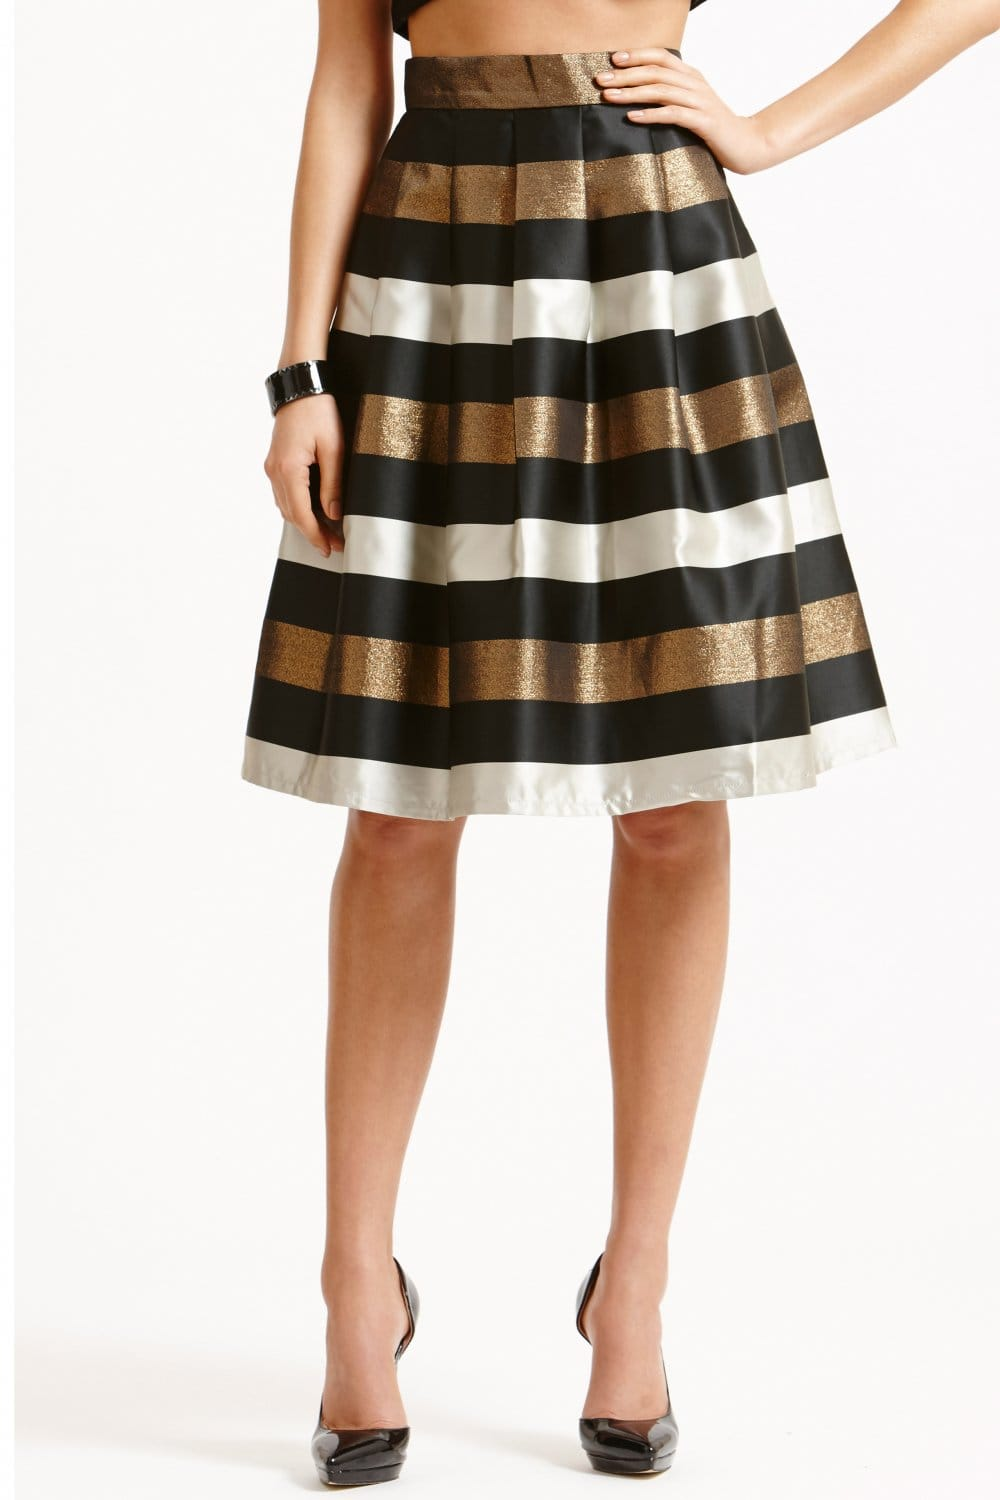 Little Mistress Striped Black White and Bronze A Line Skirt ...